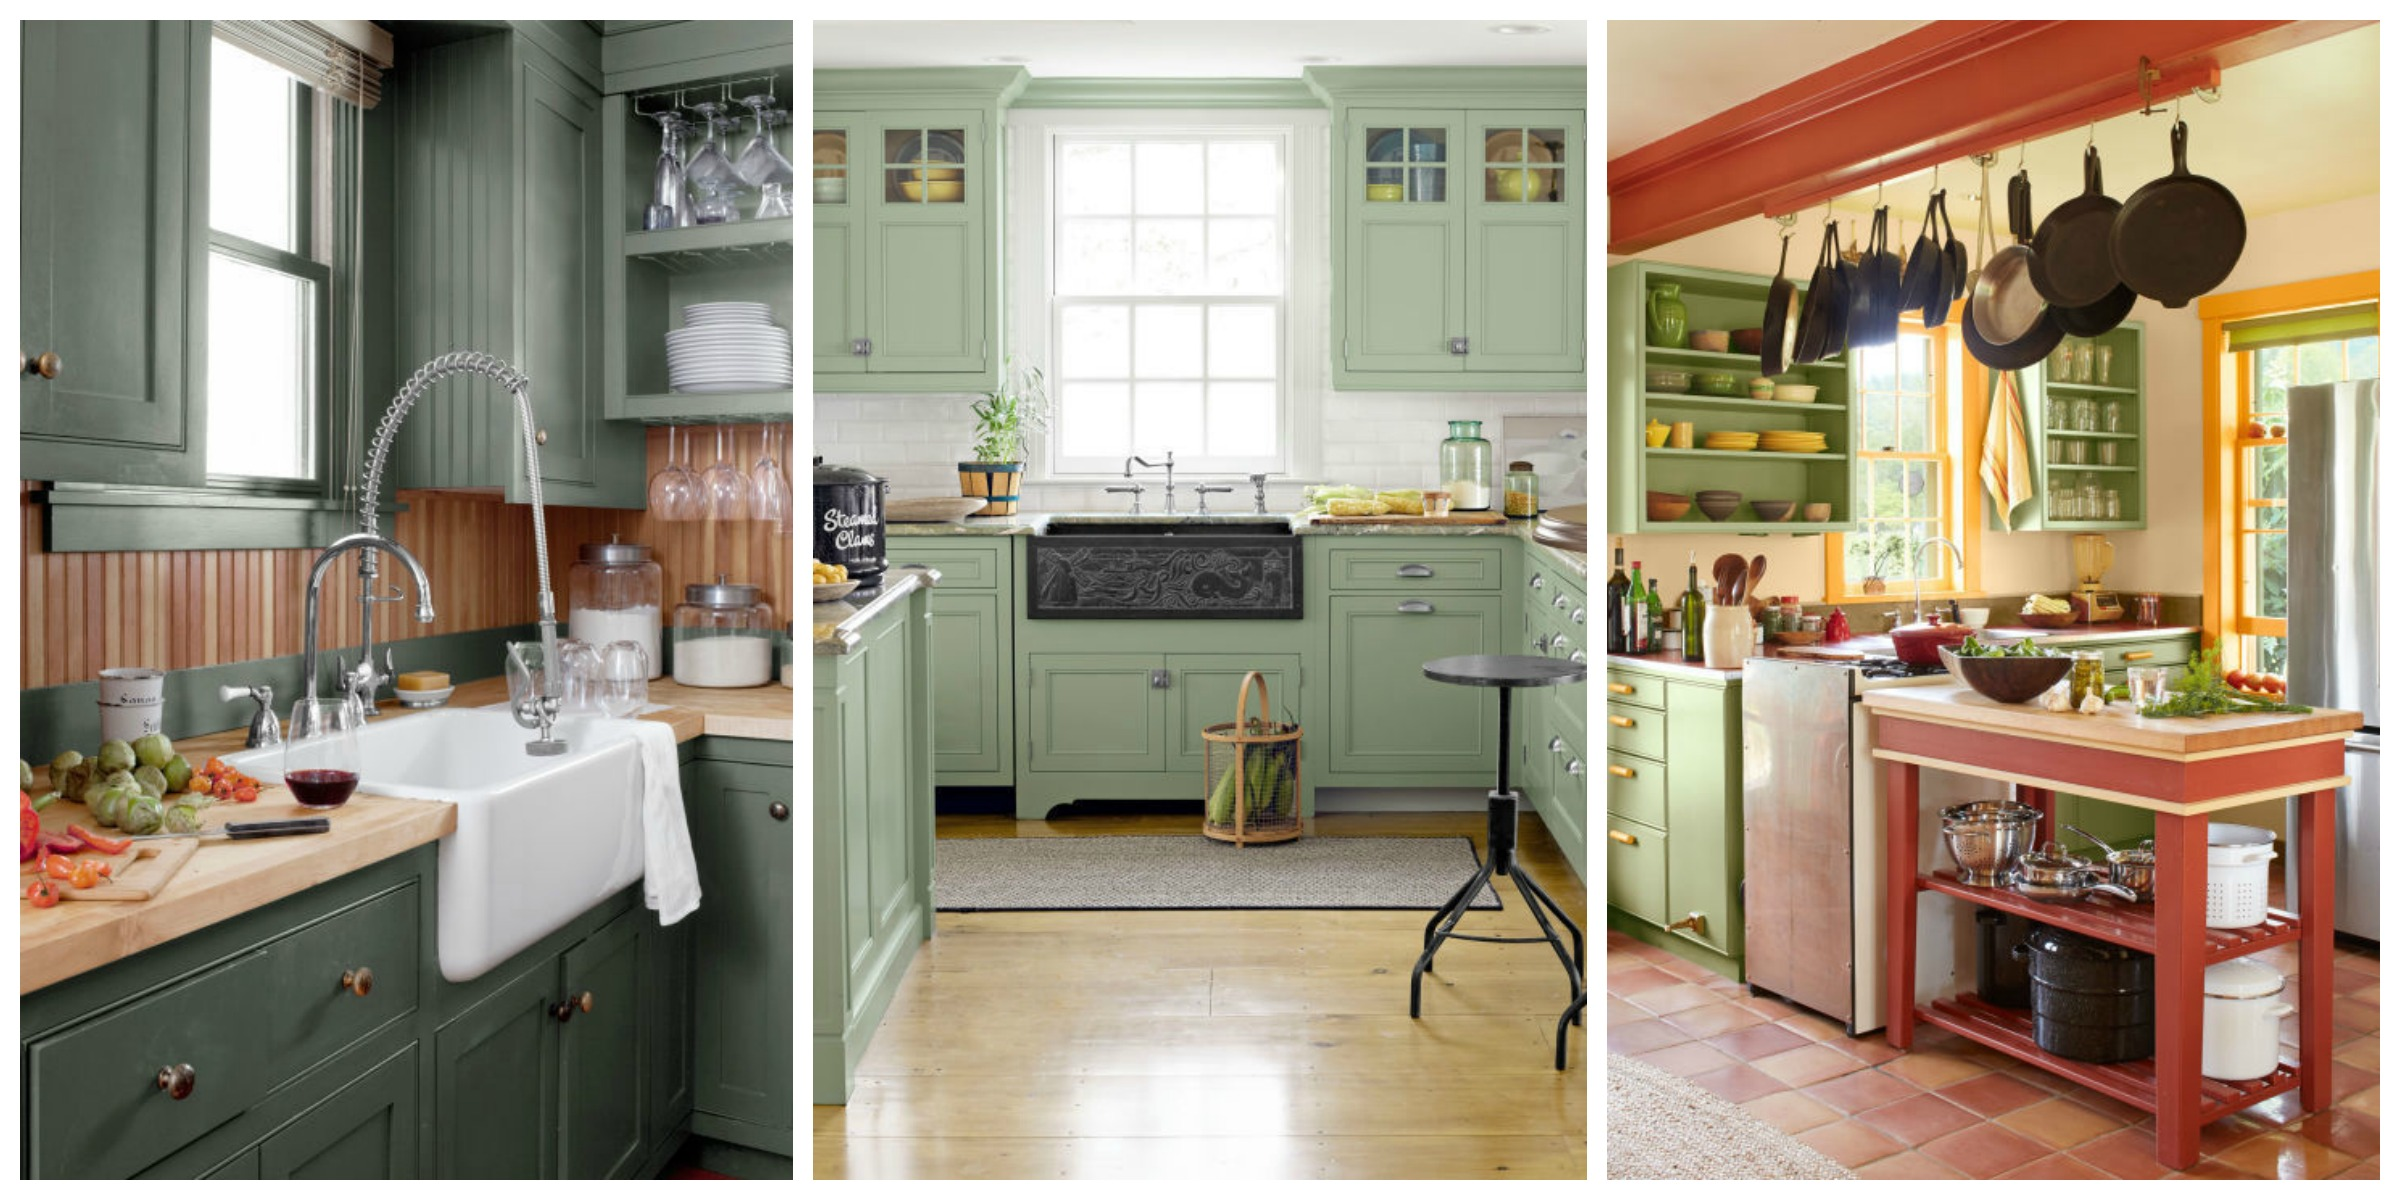 20 Of The Best Colors To Pair With Black Or White: Best Green Paint Colors For Kitchens